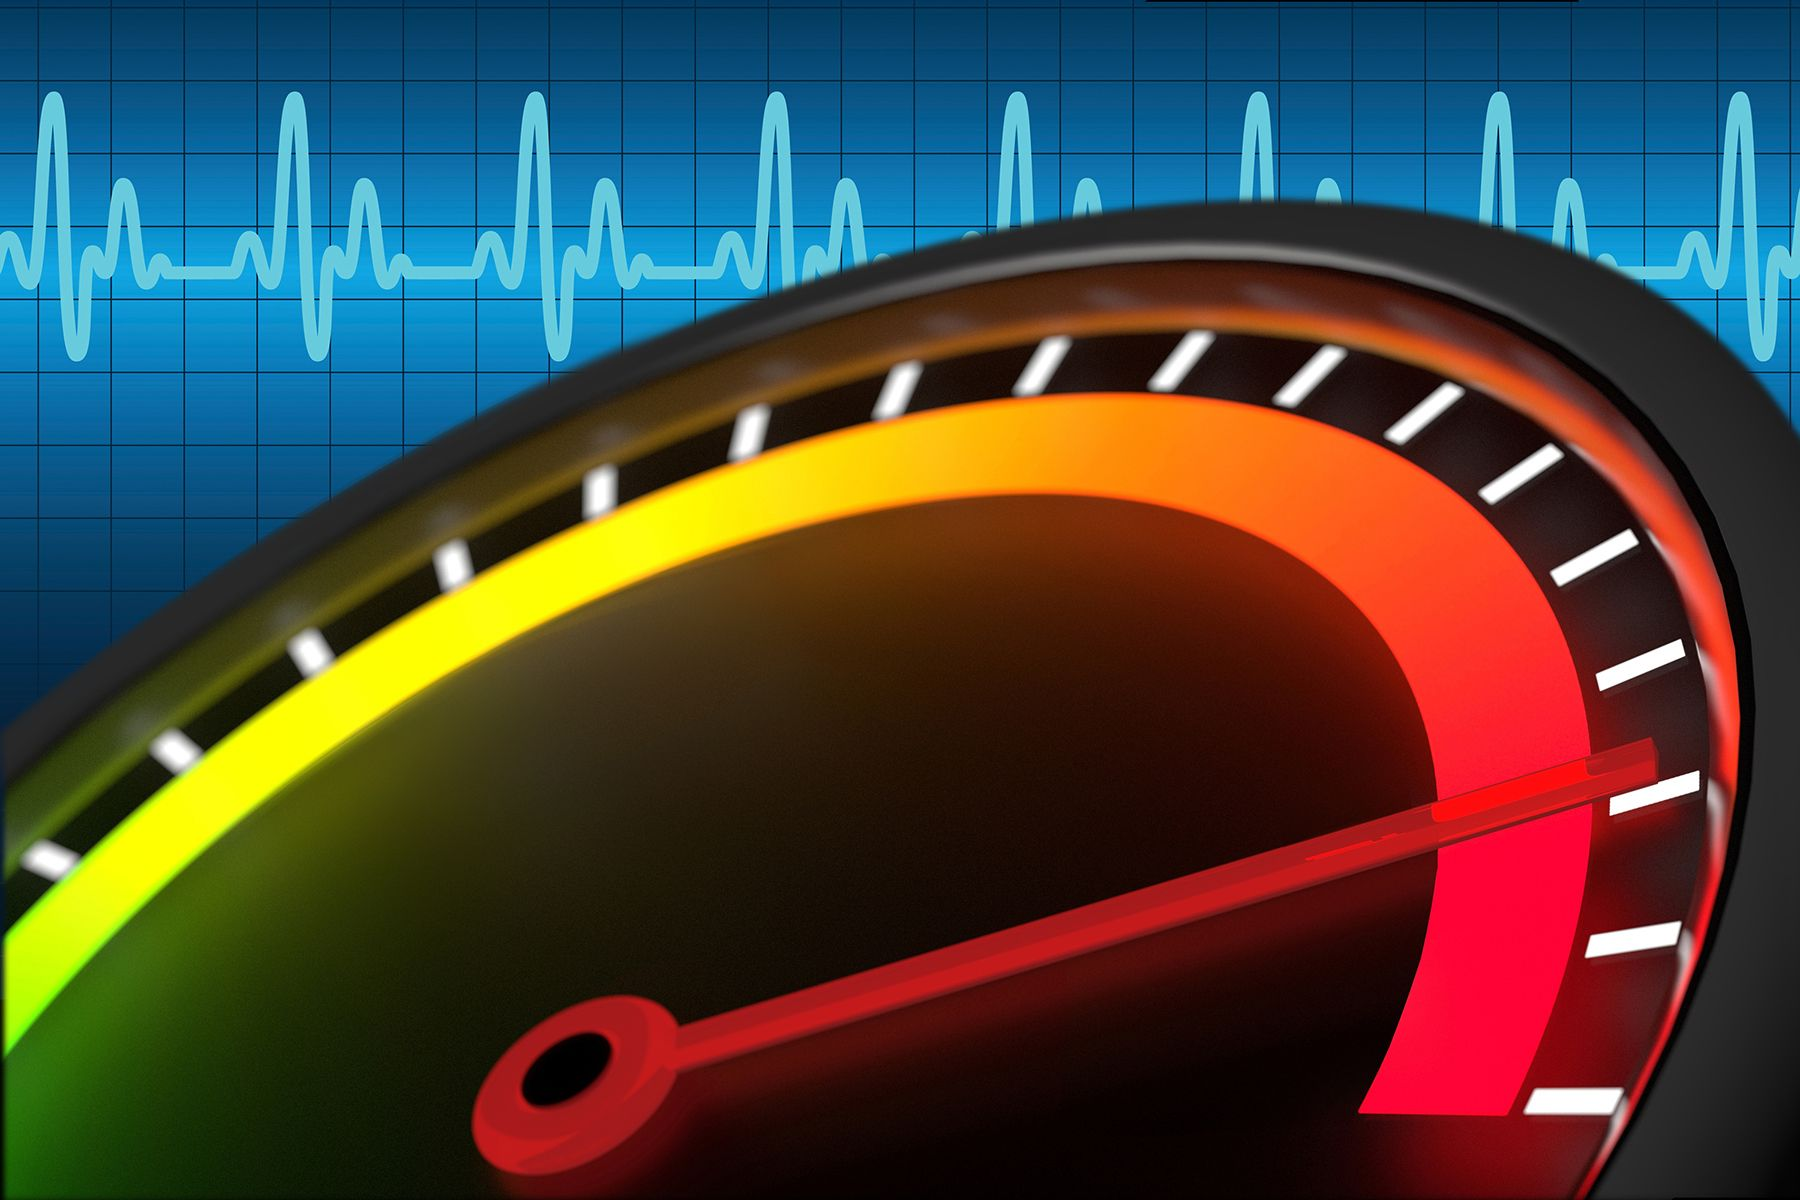 ekg readout and gauge